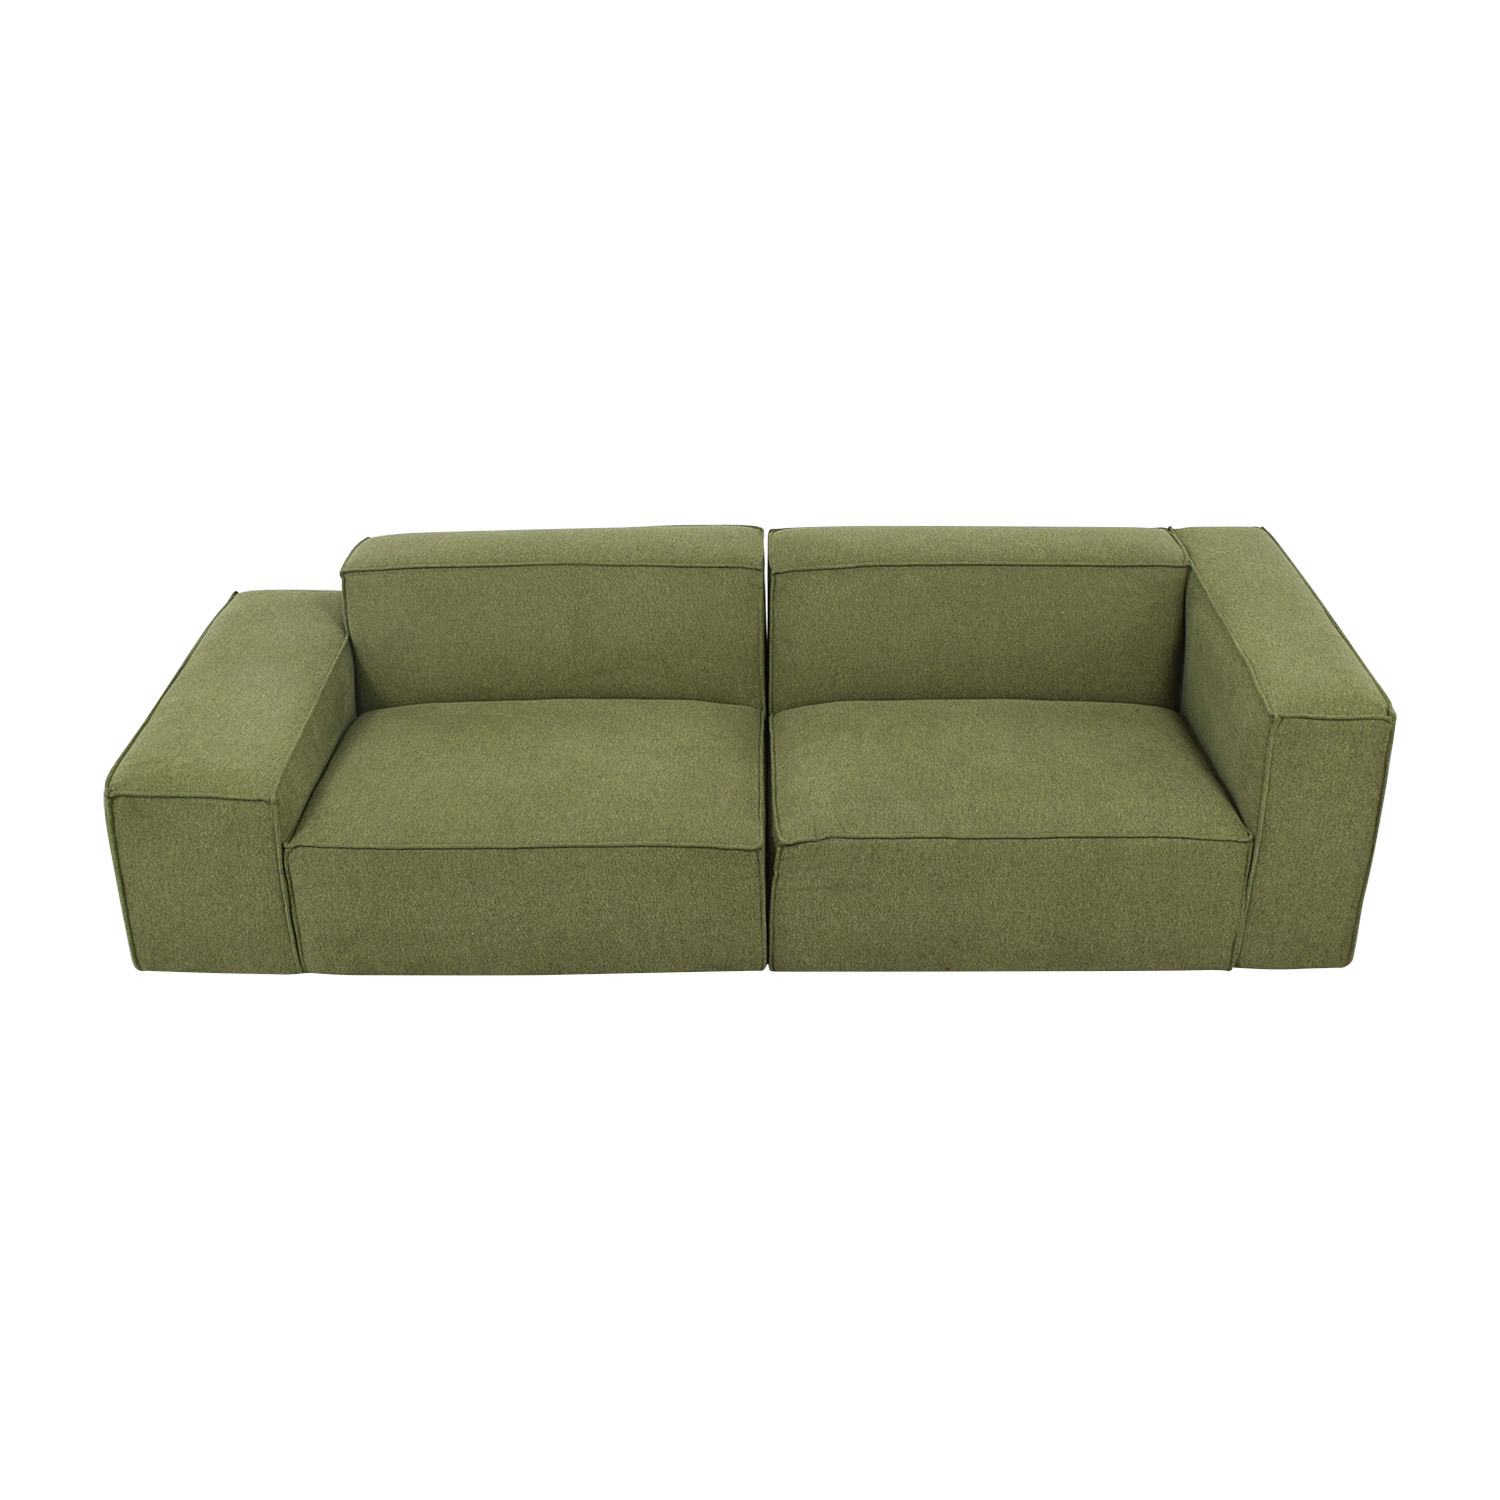 Gray Performance Felt Evergreen Two Cushion Sofa second hand